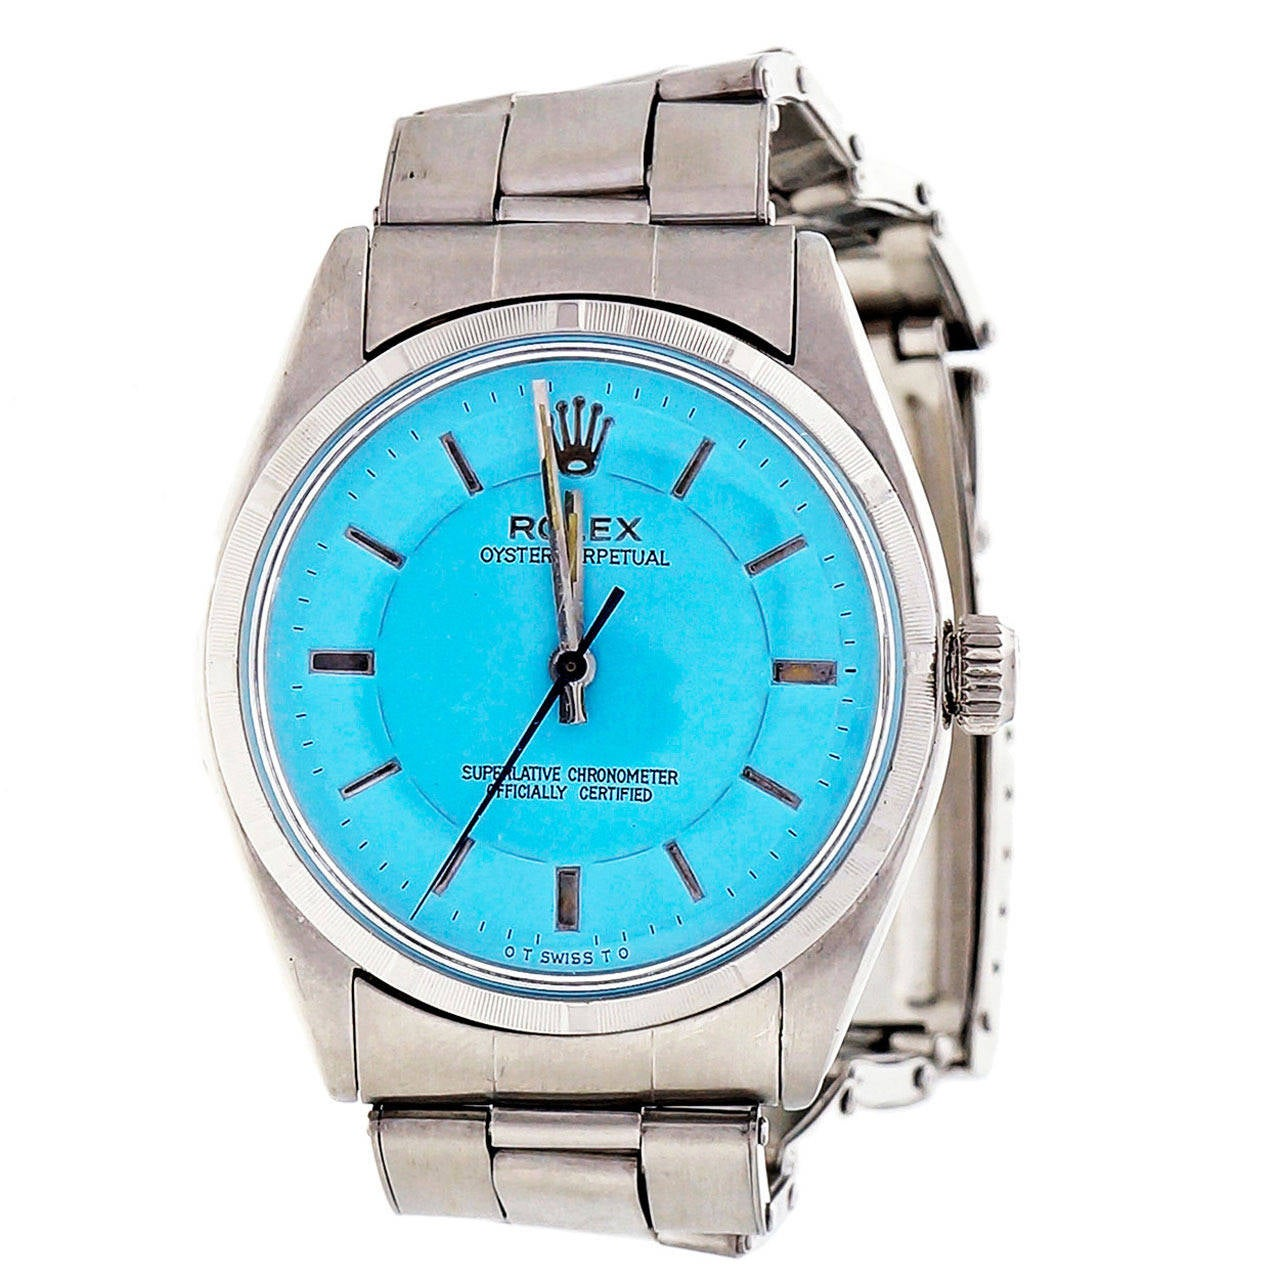 Rolex Stainless Steel Oyster Perpetual  Wristwatch Ref 6565